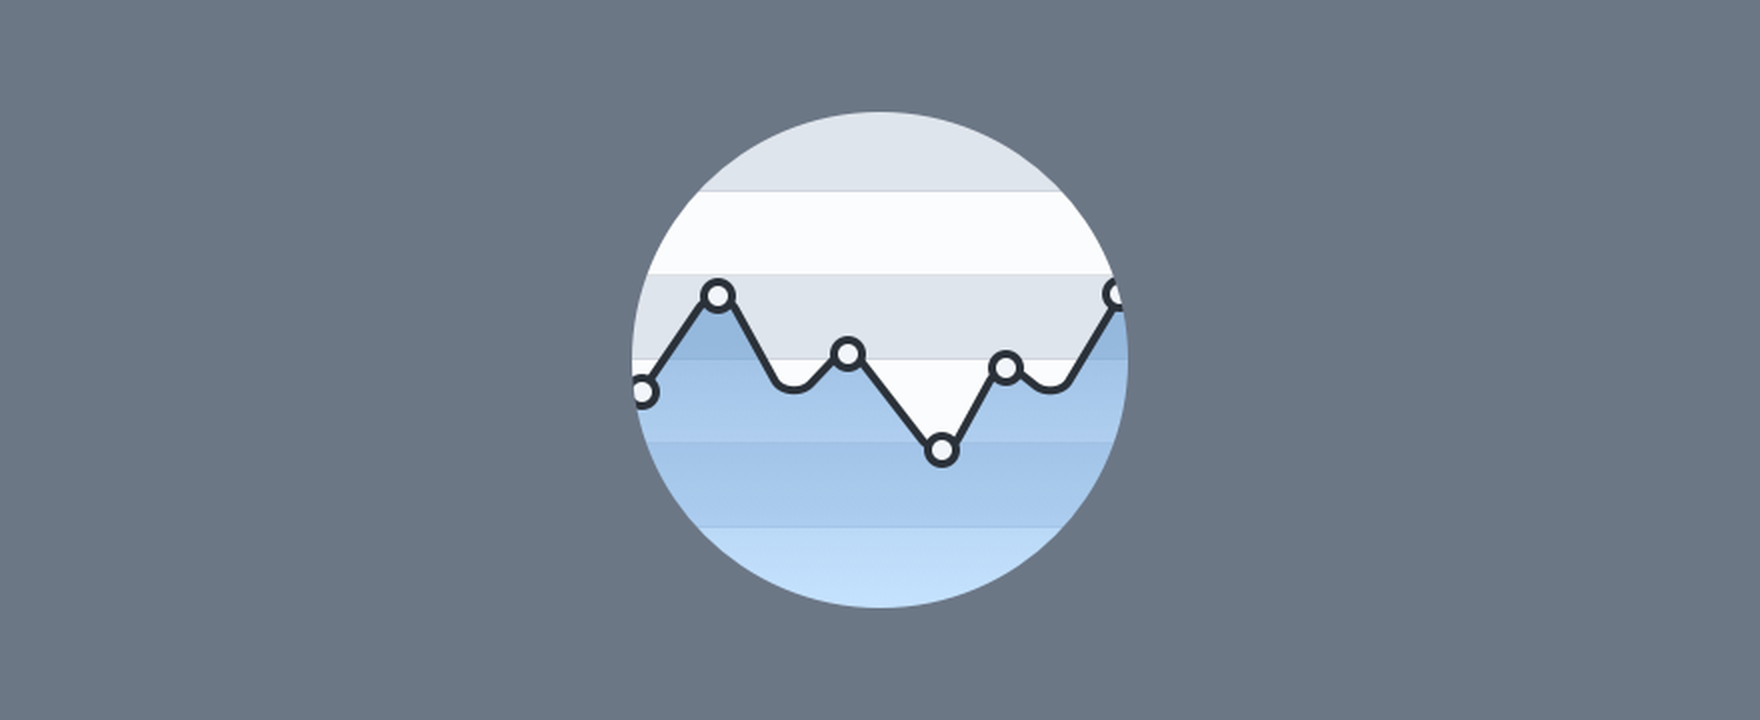 The 6 Customer Service KPIs You Should Be Tracking